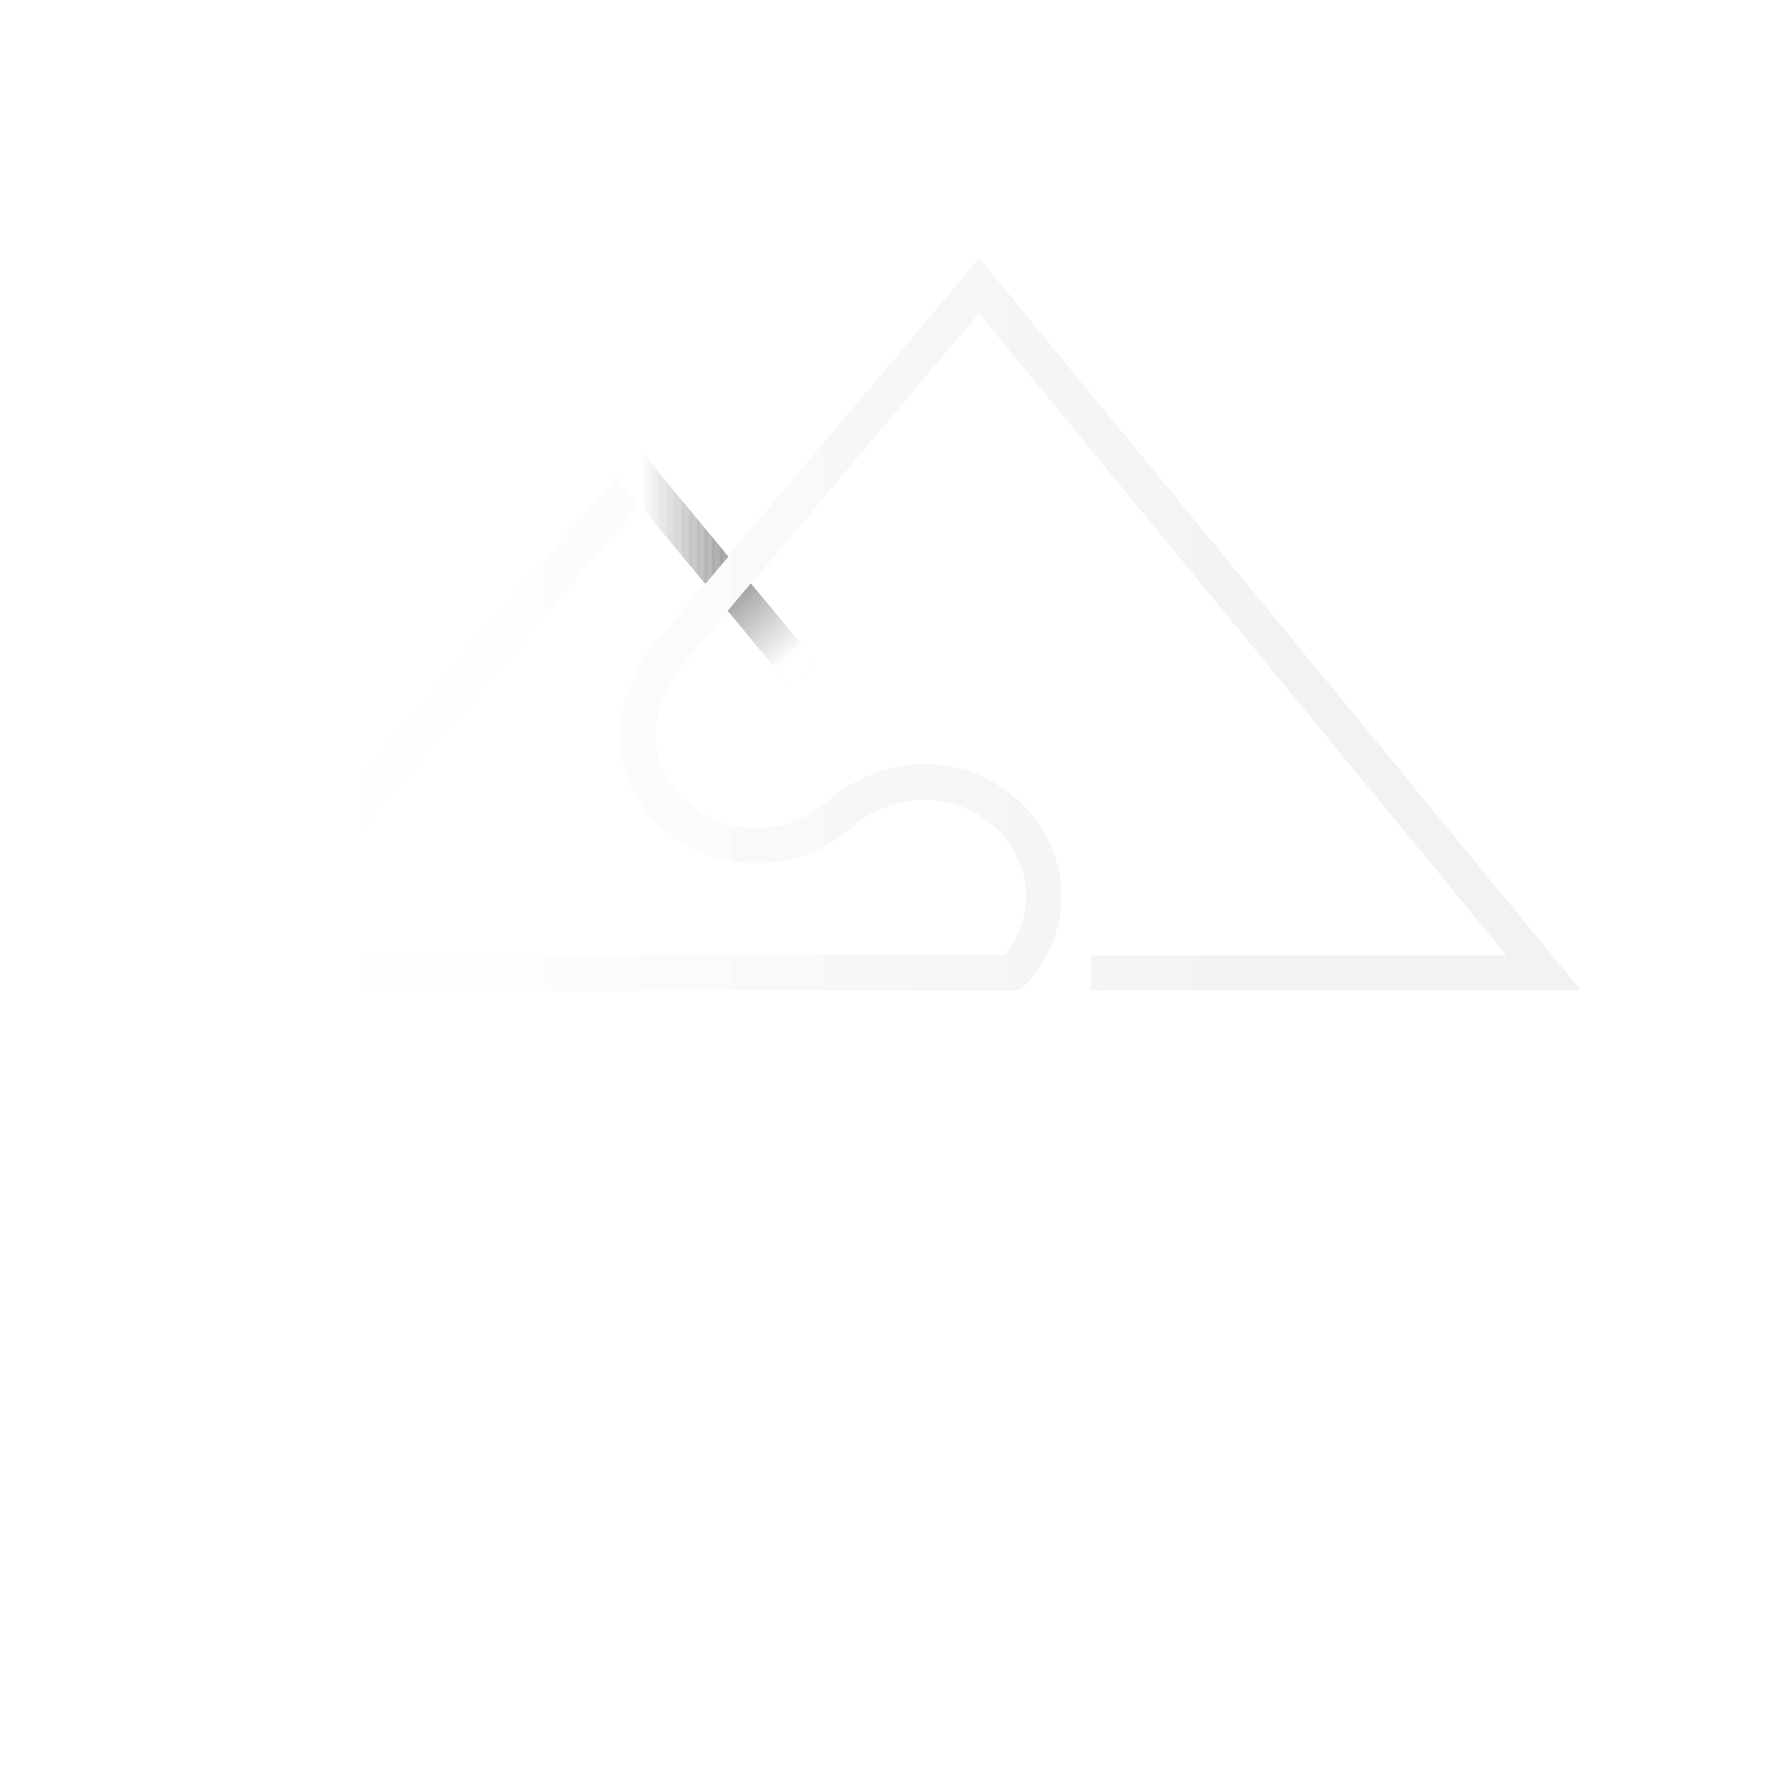 Mountain Live Travel